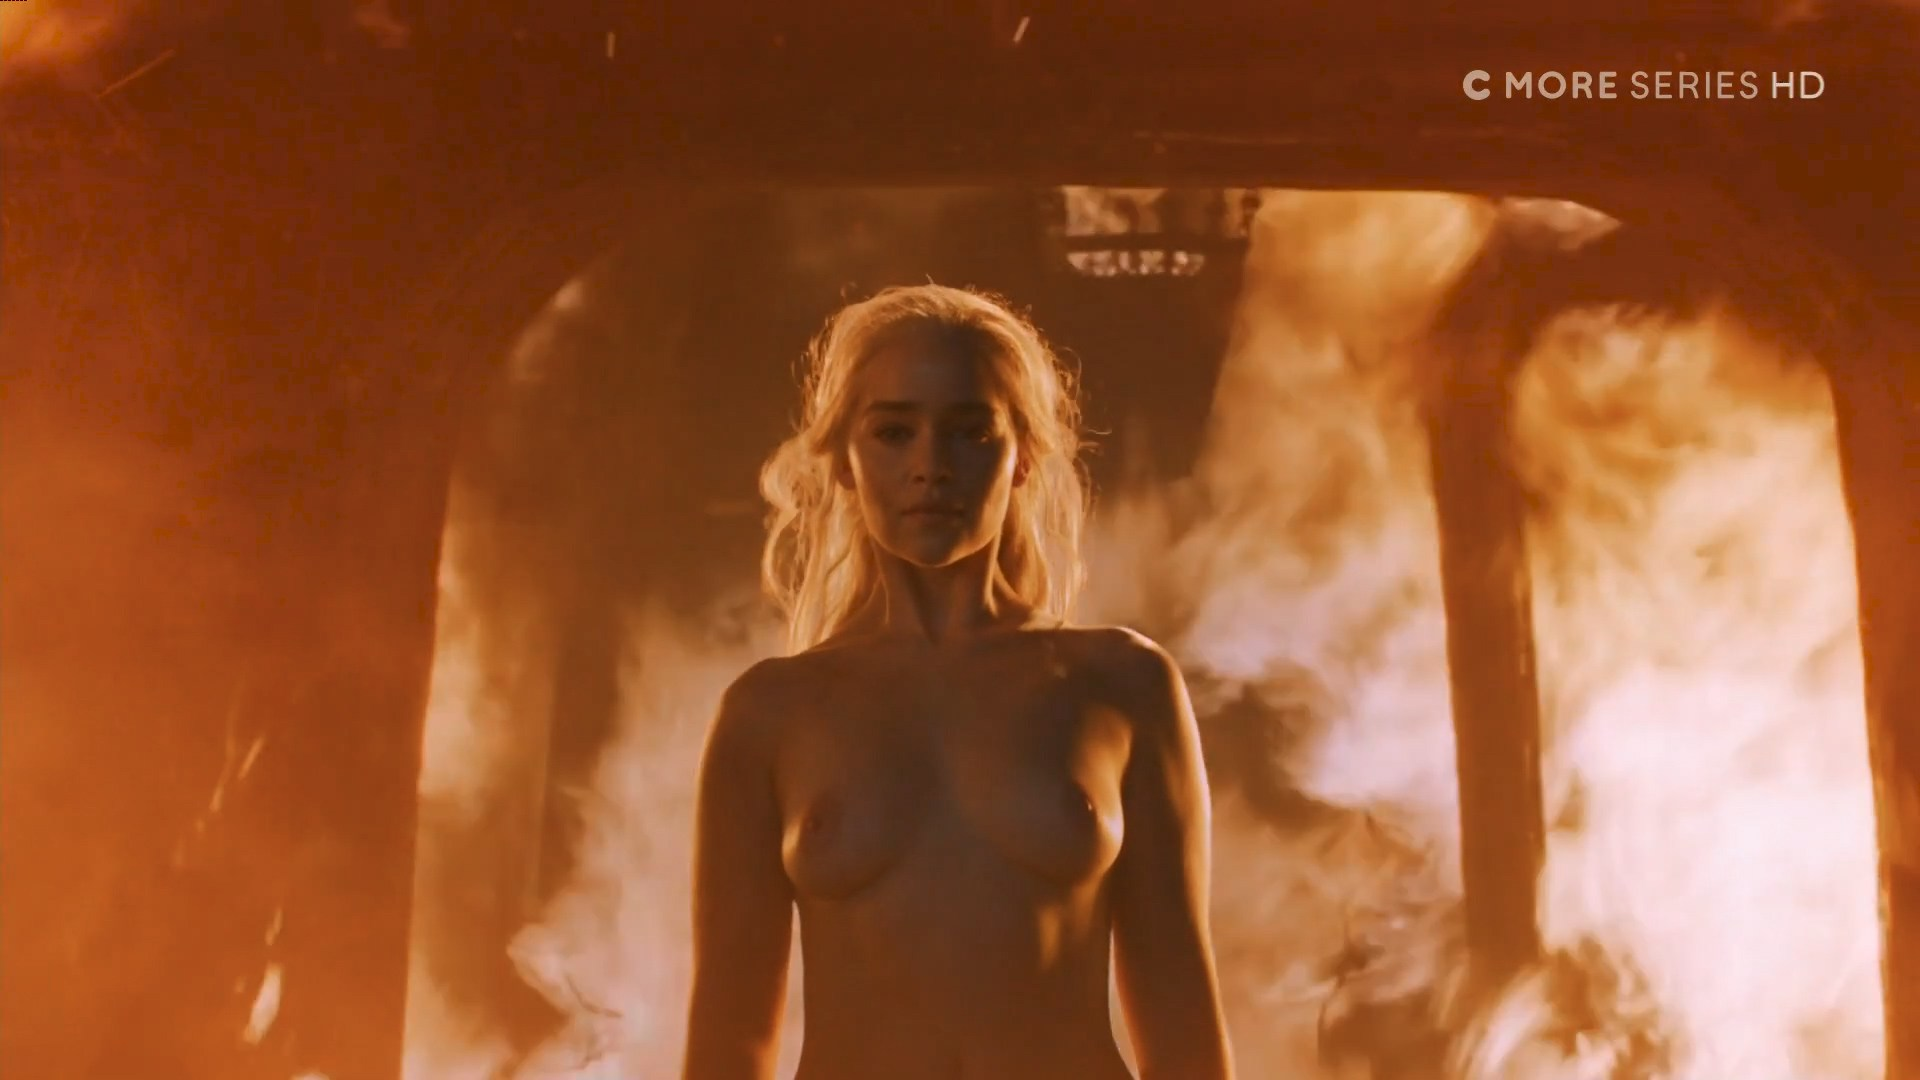 0313180006364_02_Emilia-Clarke-nude-topless-Game-of-Thrones-2006-s6e4-HDTV-1080p-2.jpg